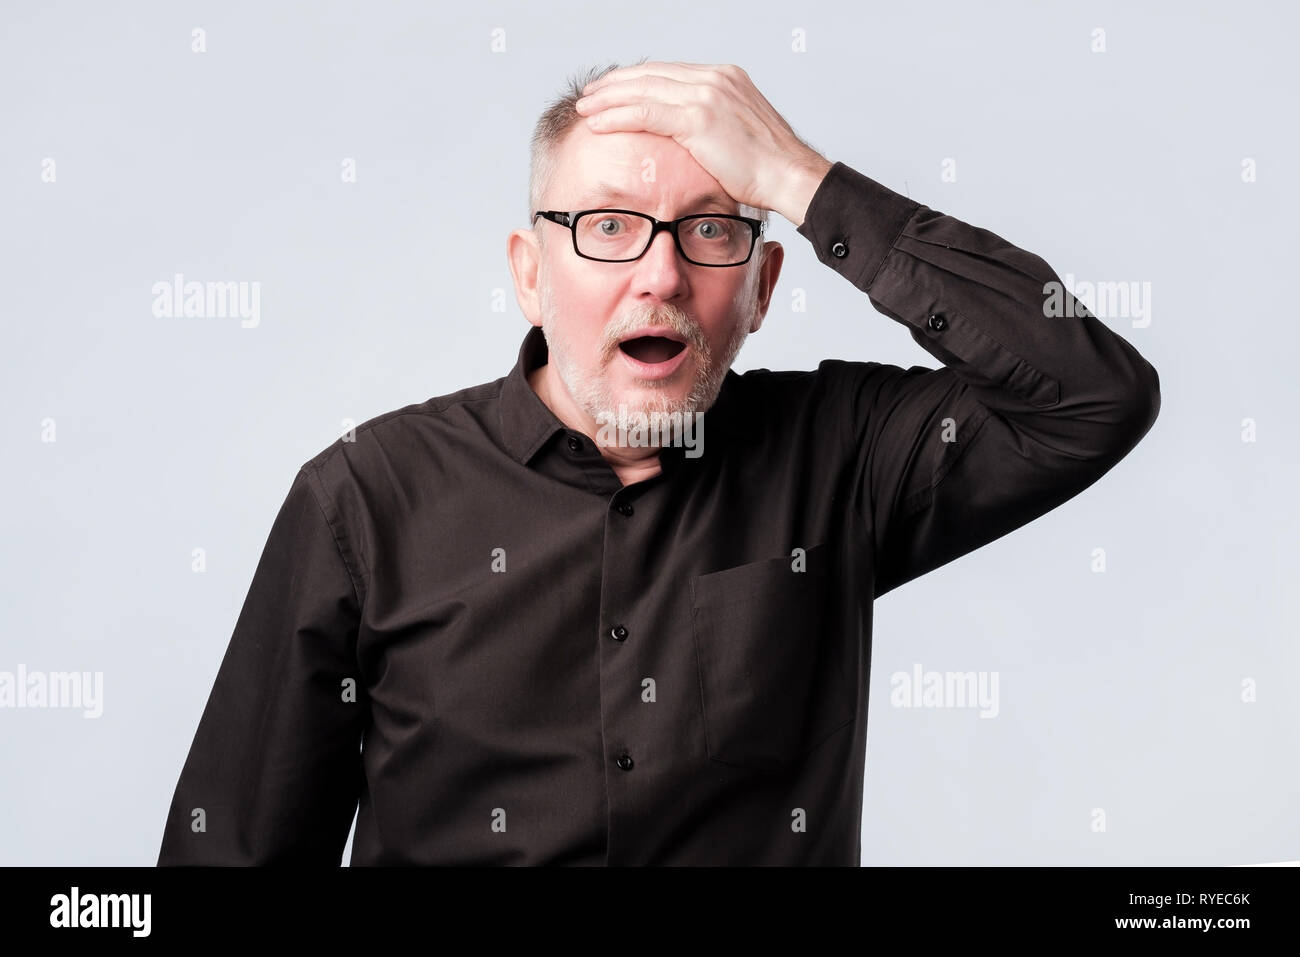 Senior man in black shirt putting his hand on the forehead remembering something - Stock Image